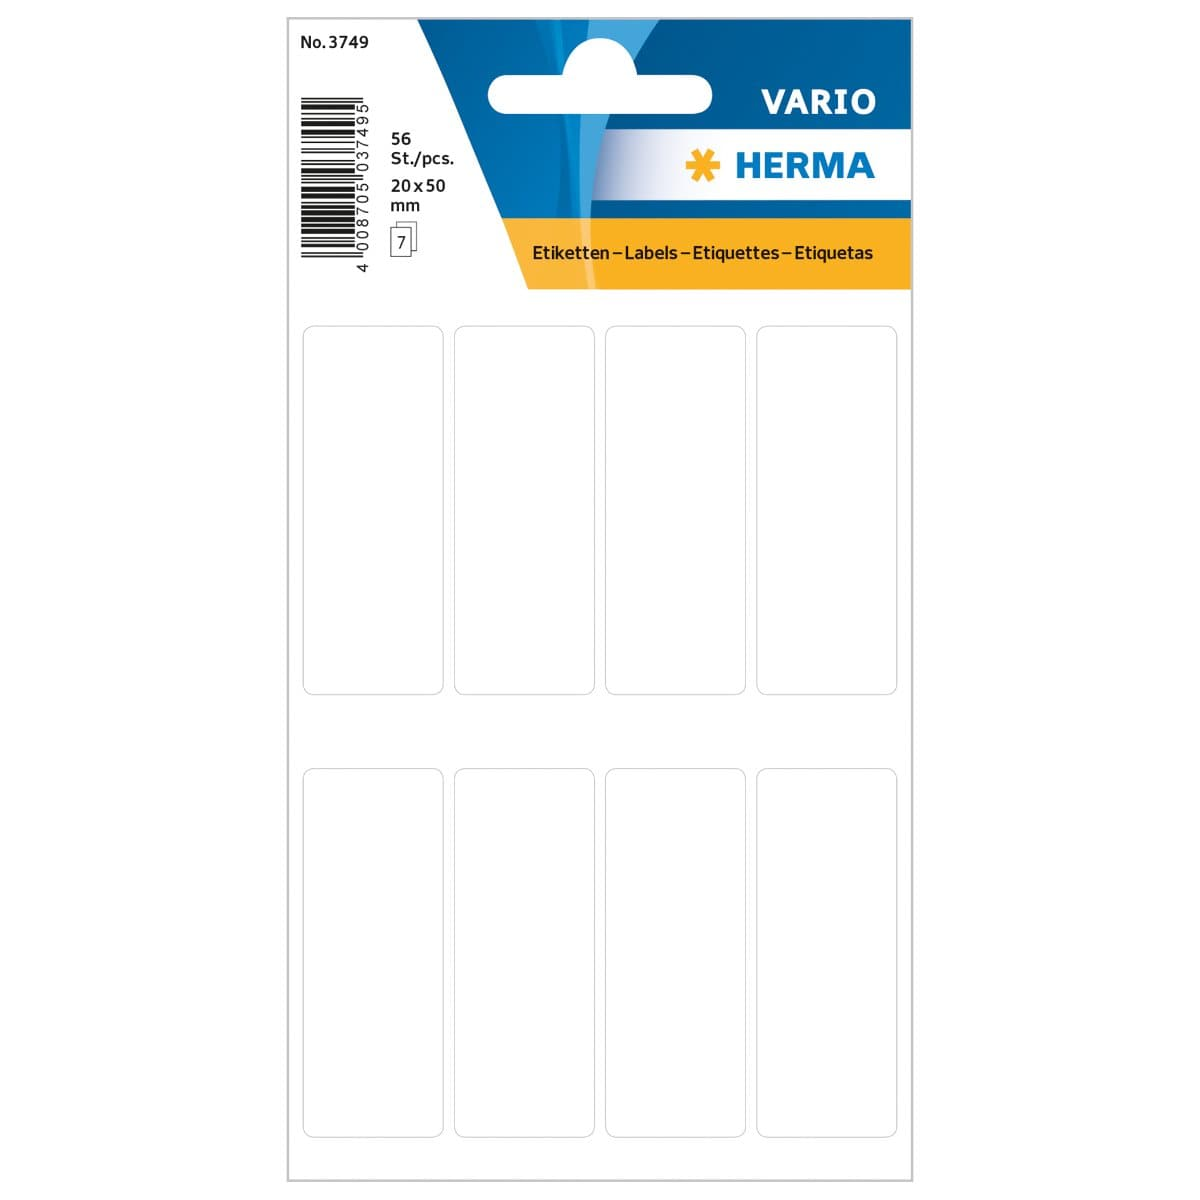 Herma Vario Sticker Labels, 20 x 50 mm, 56/pack, White